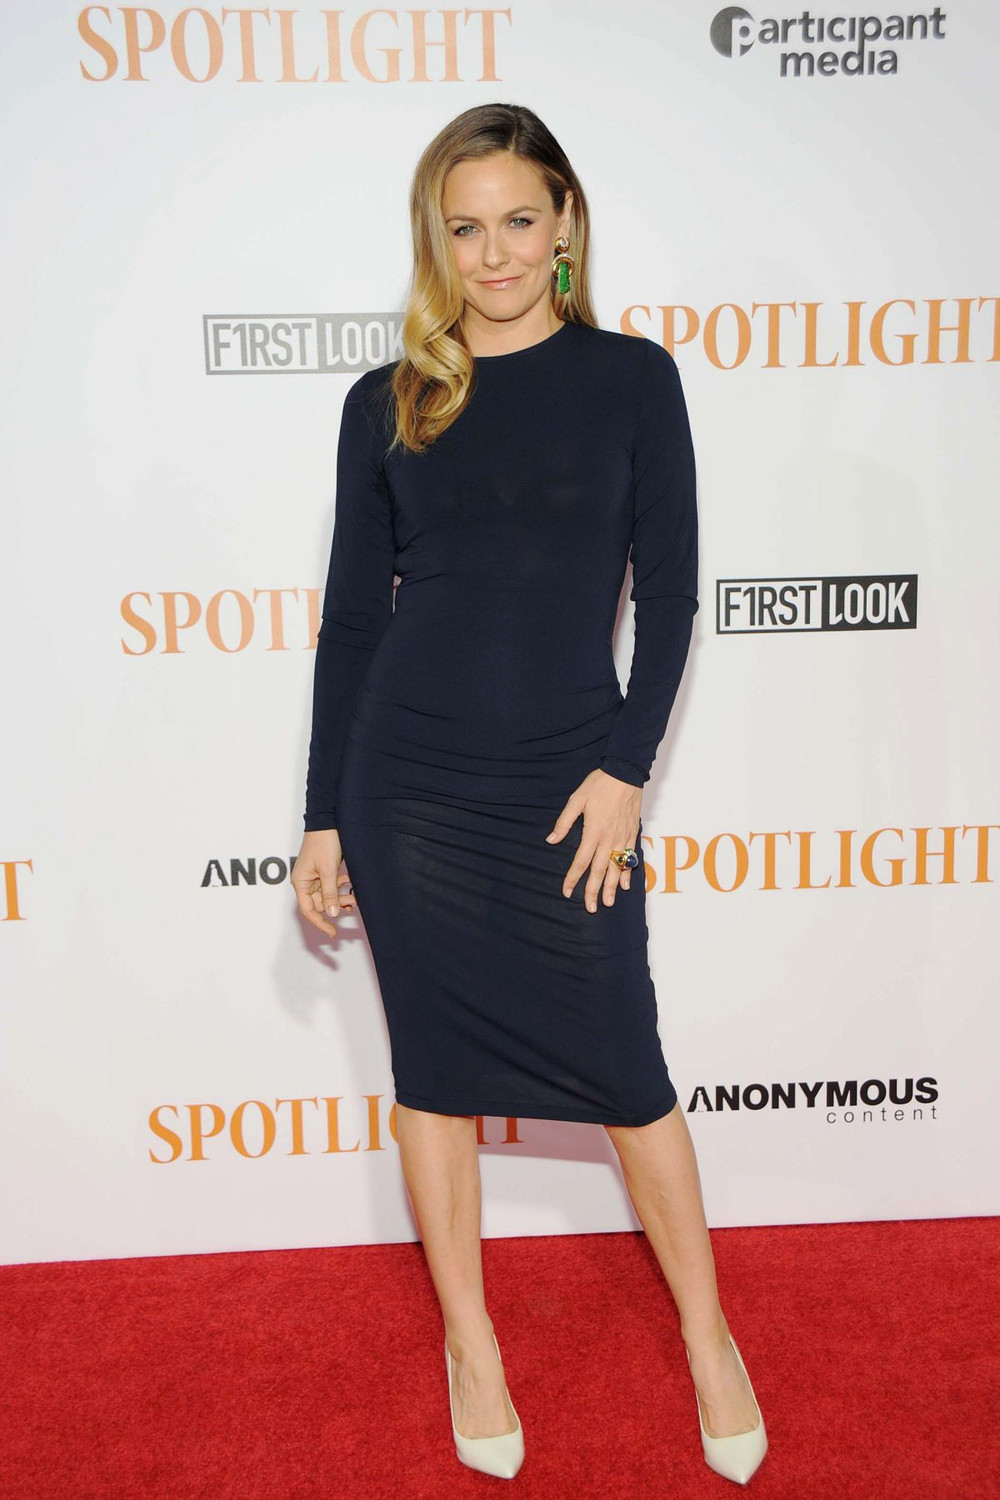 alicia-silverstone-at-spotlight-premiere-in-new-york-10-27-2015_9.jpg